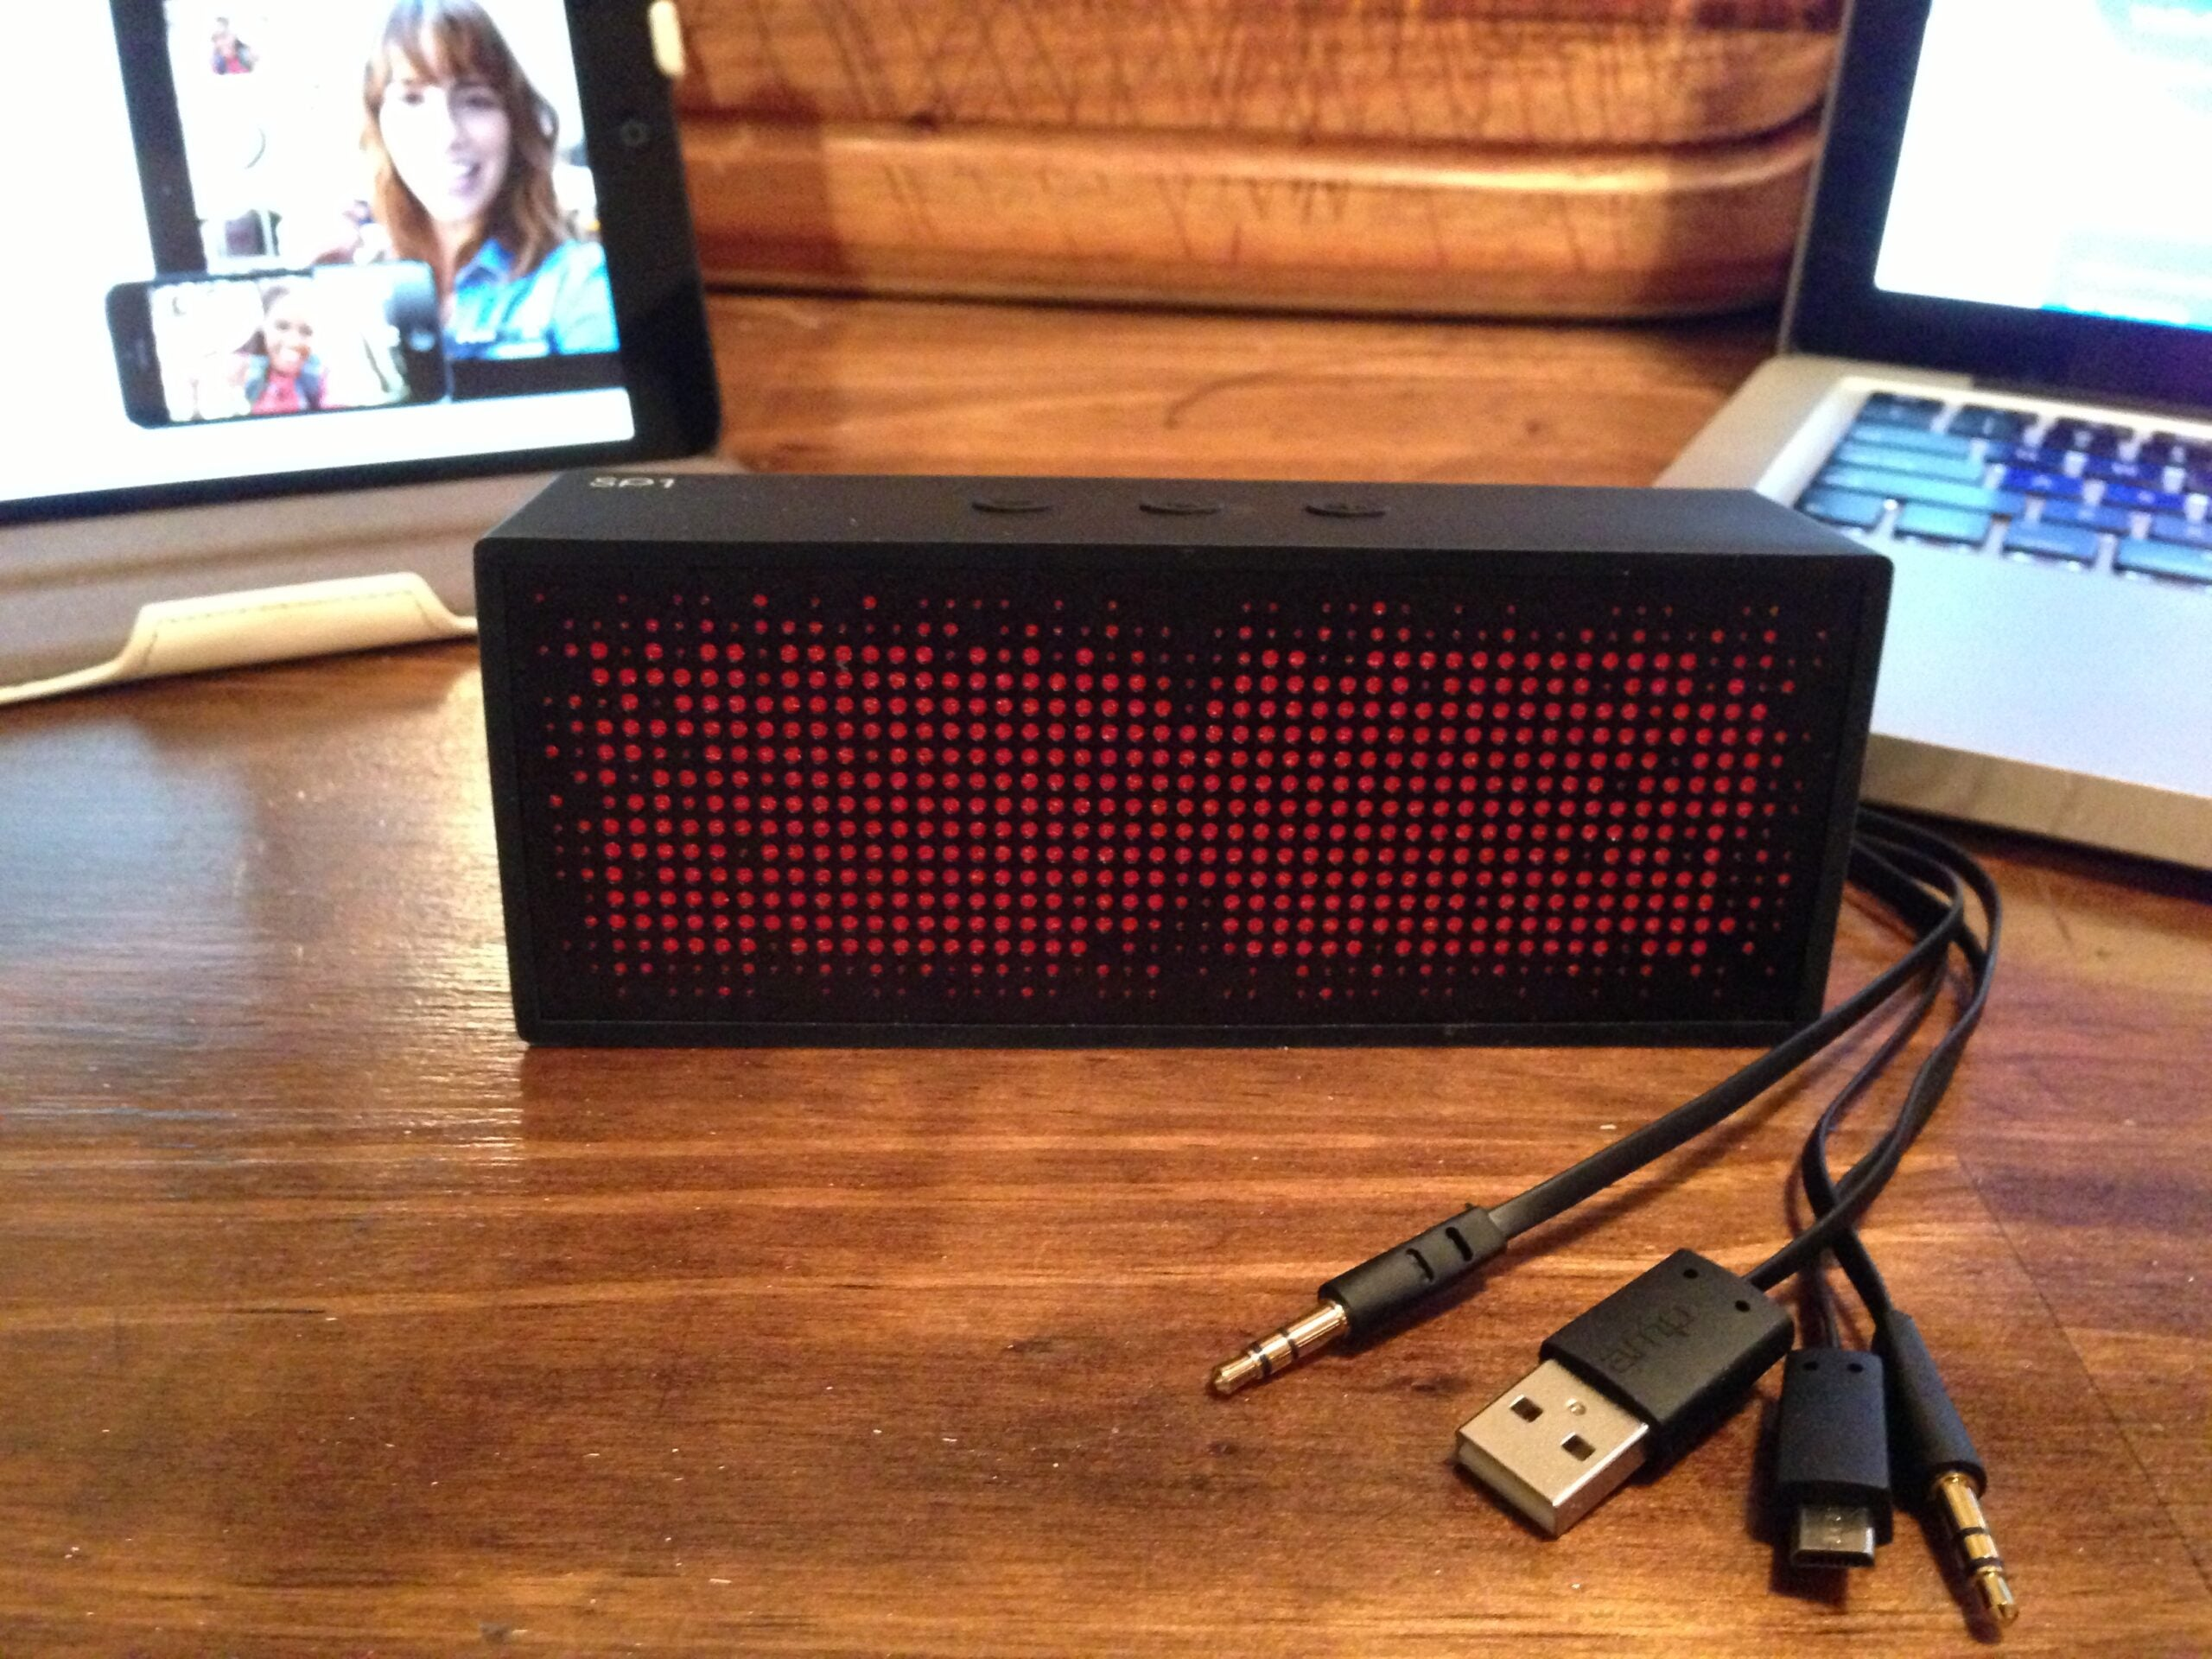 Sponsored Post: Paid Review of a.m.p. SP1 Wireless Bluetooth Speaker & Speakerphone